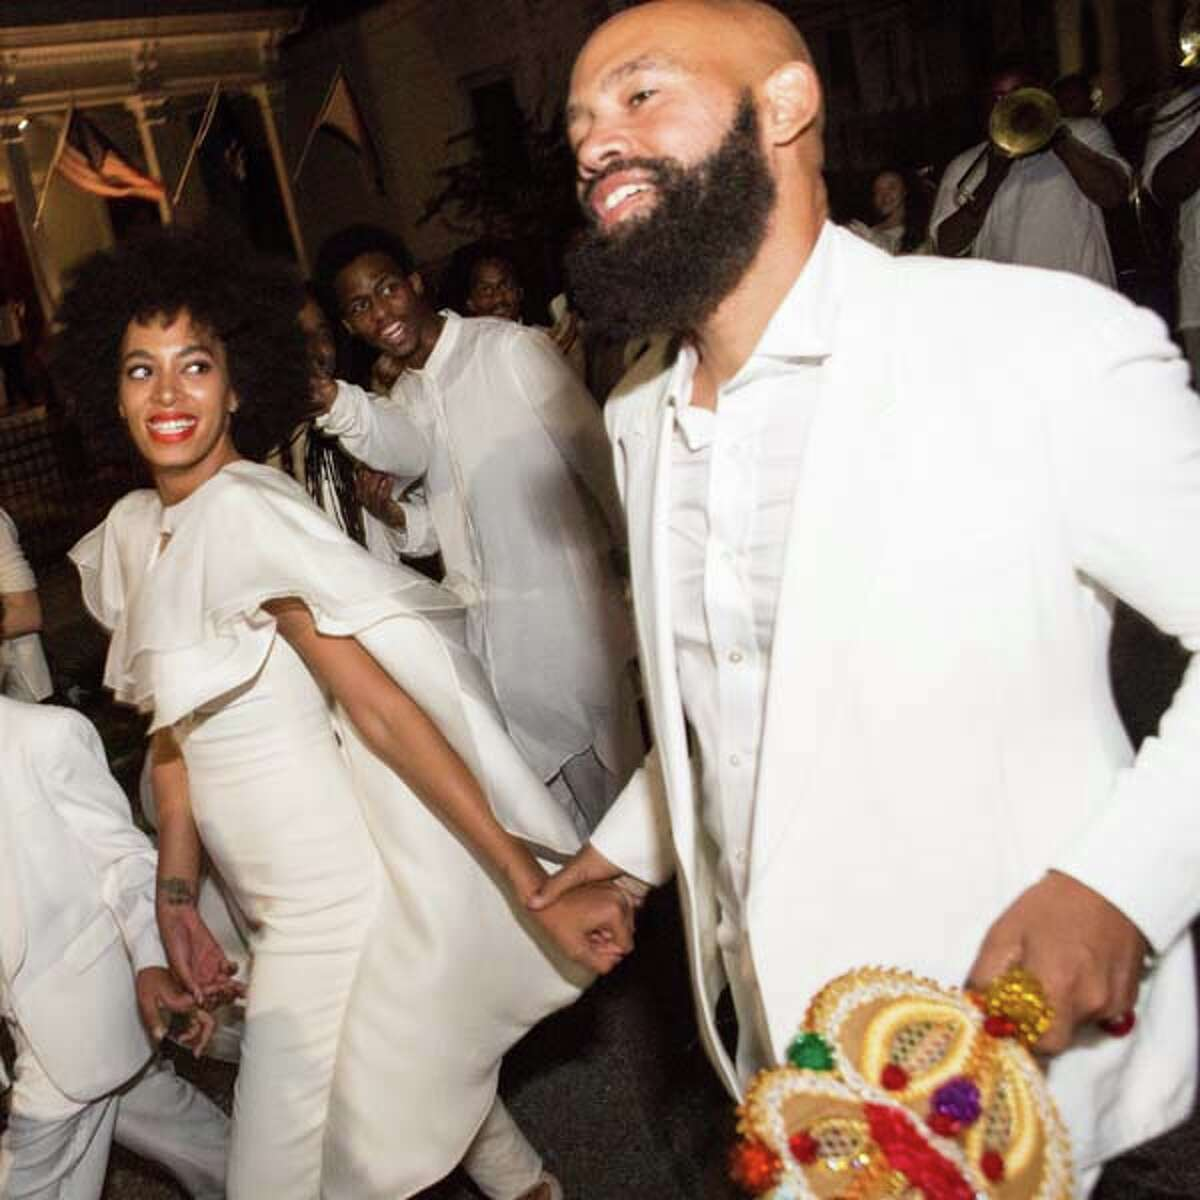 Musician Solange Knowles (L) and her new husband, music video director Alan Ferguson, attend the secondline with family and friends following their wedding on November 16, 2014 in New Orleans, Louisiana. (Photo by Josh Brasted/WireImage)